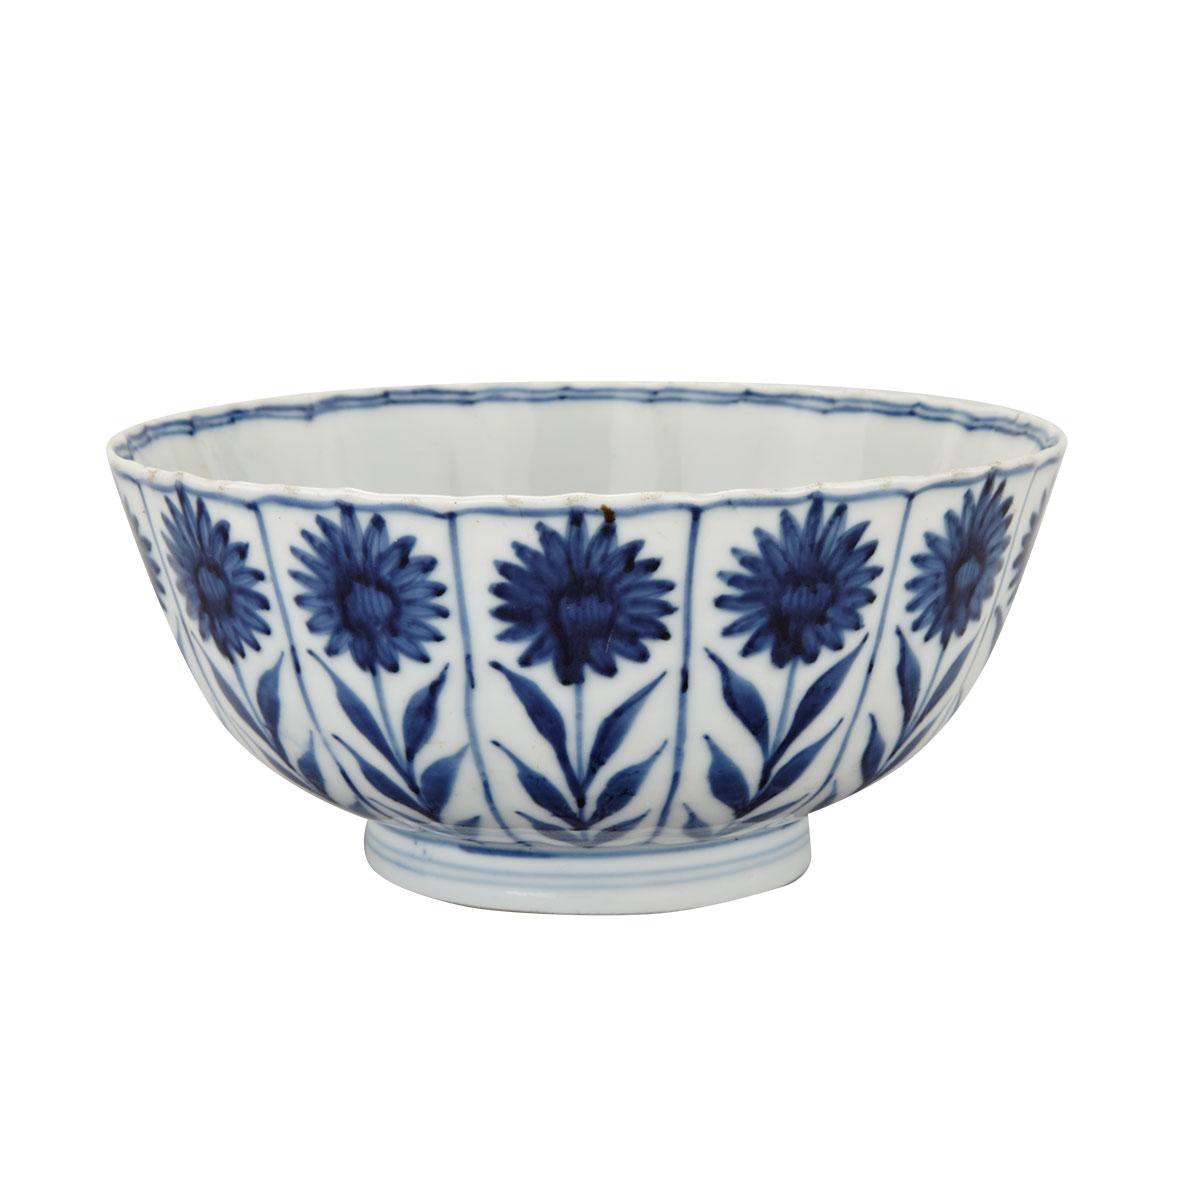 Export Blue and White Lobed Floral Bowl, Kangxi Period (1662-1722)